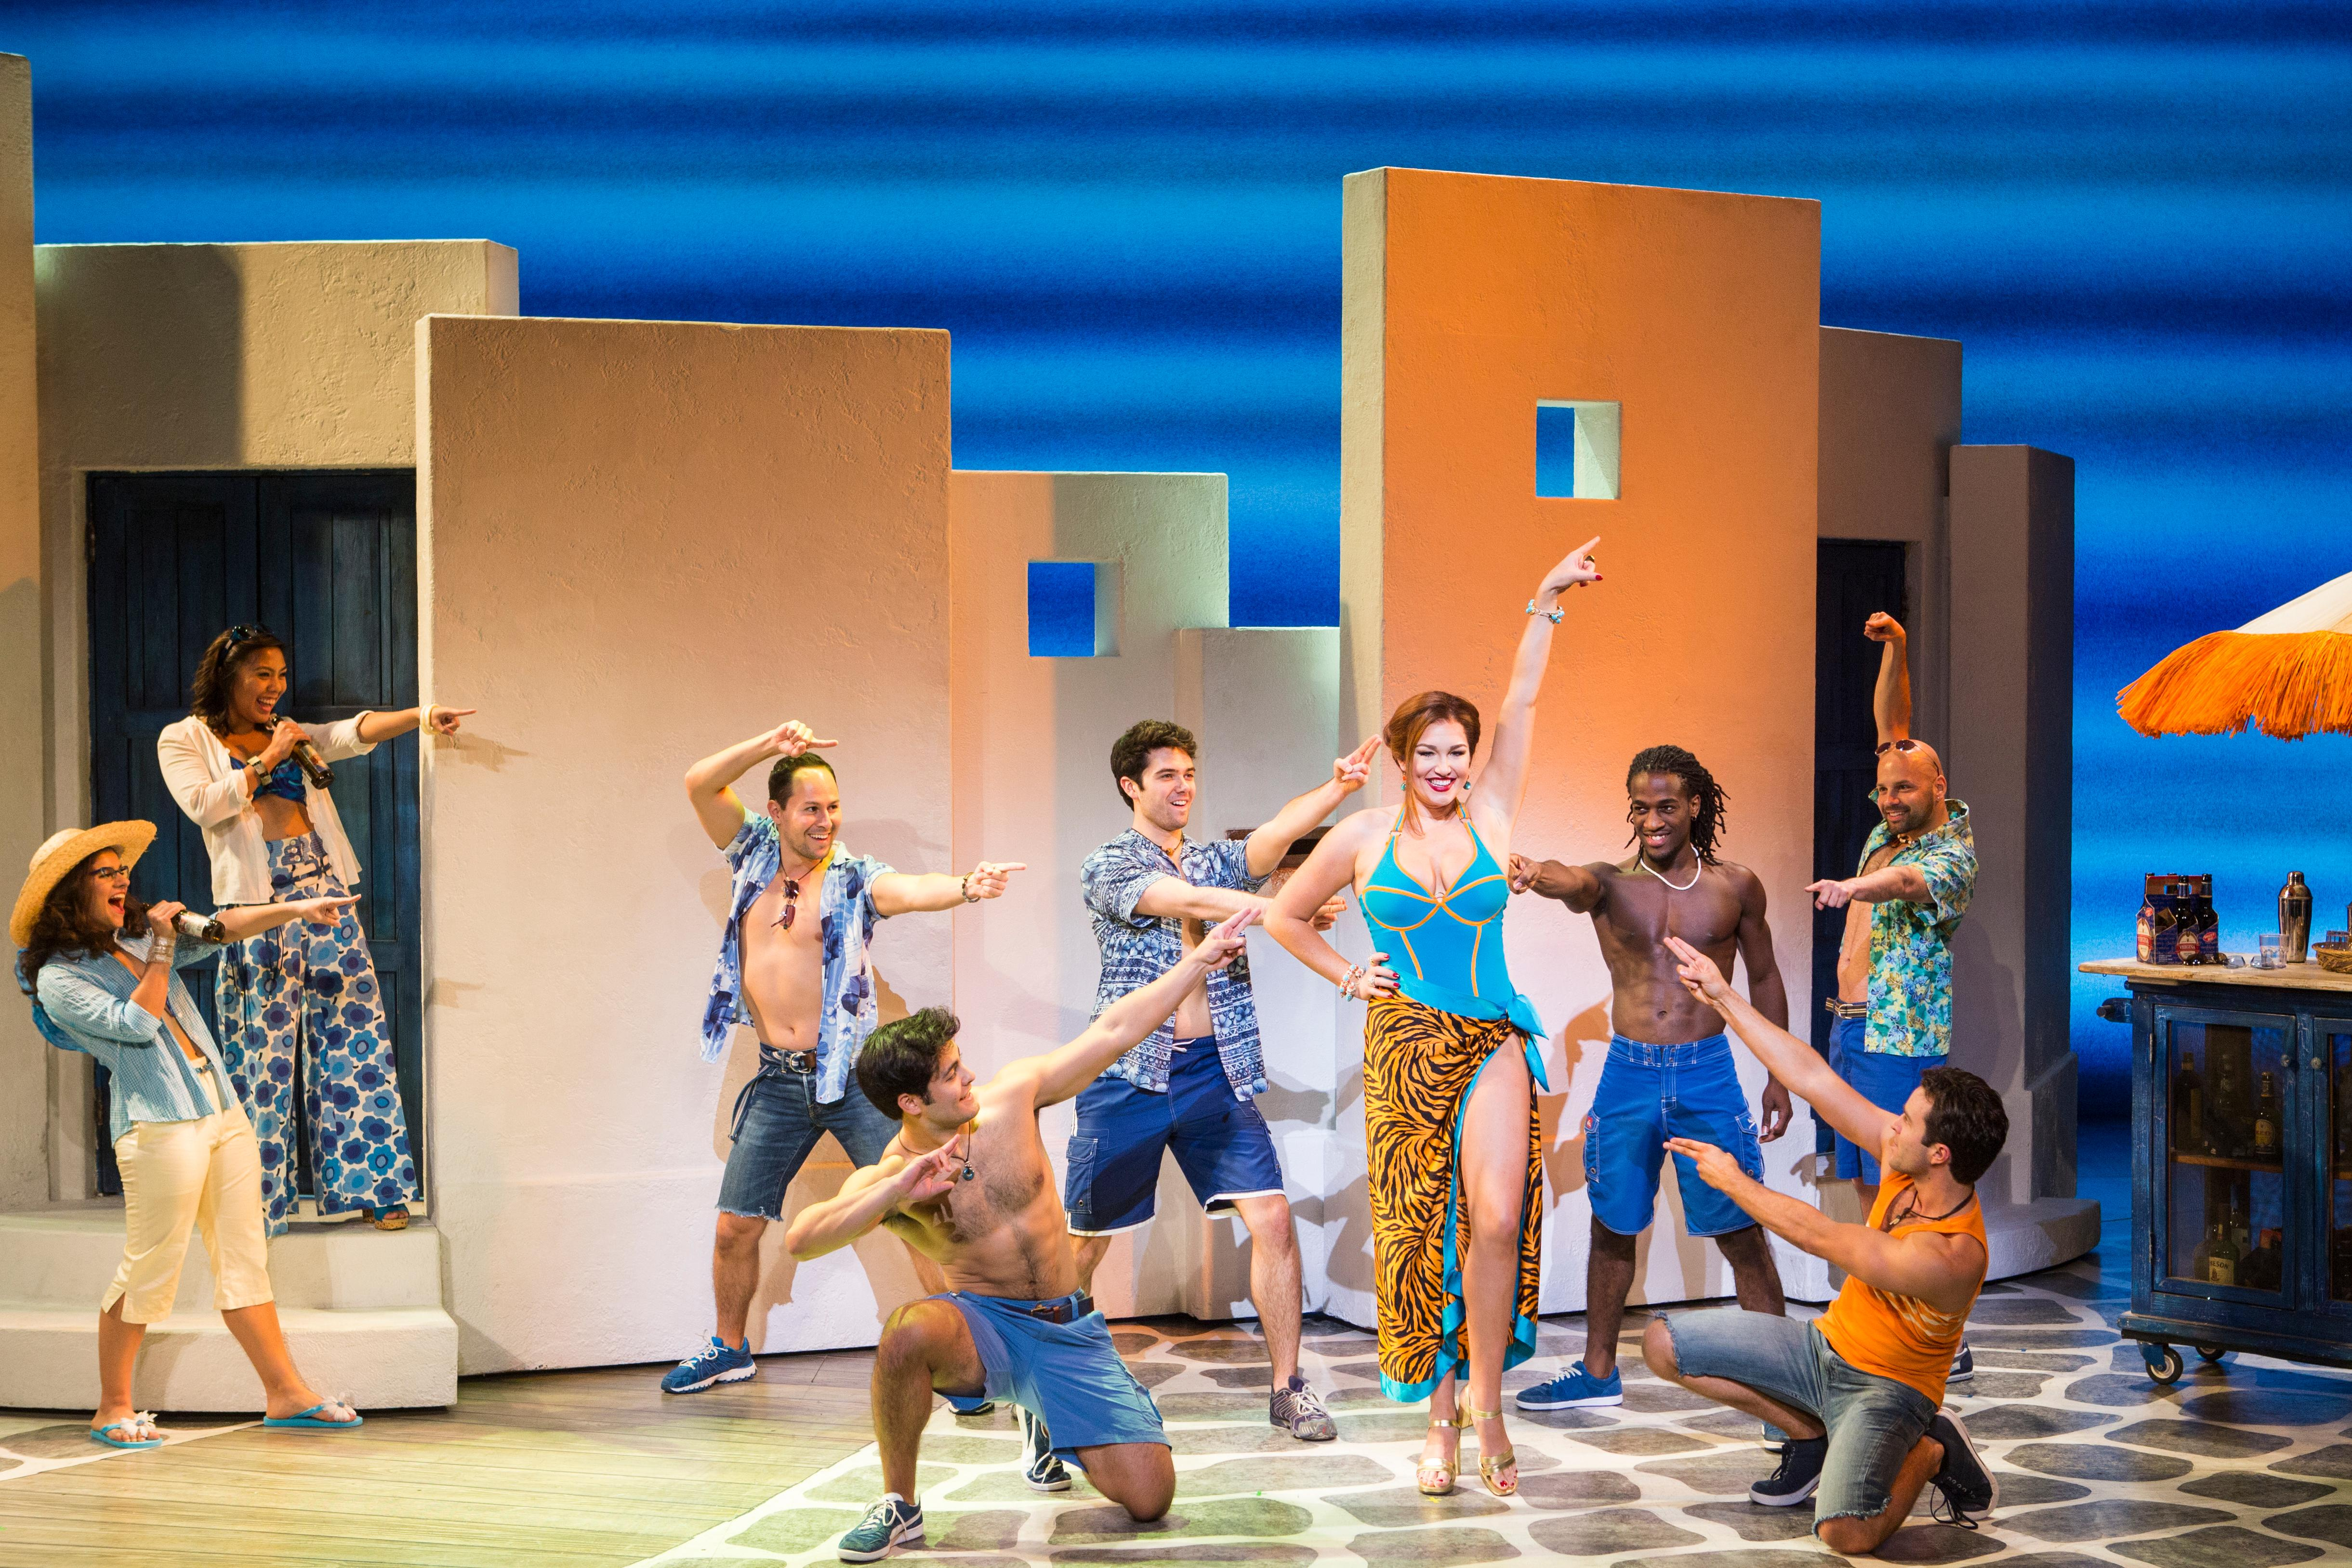 The musical, Mamma Mia, is playing right now at Seattle's Paramount Theatre and it's your last chance to see it. (Image: The Paramount)